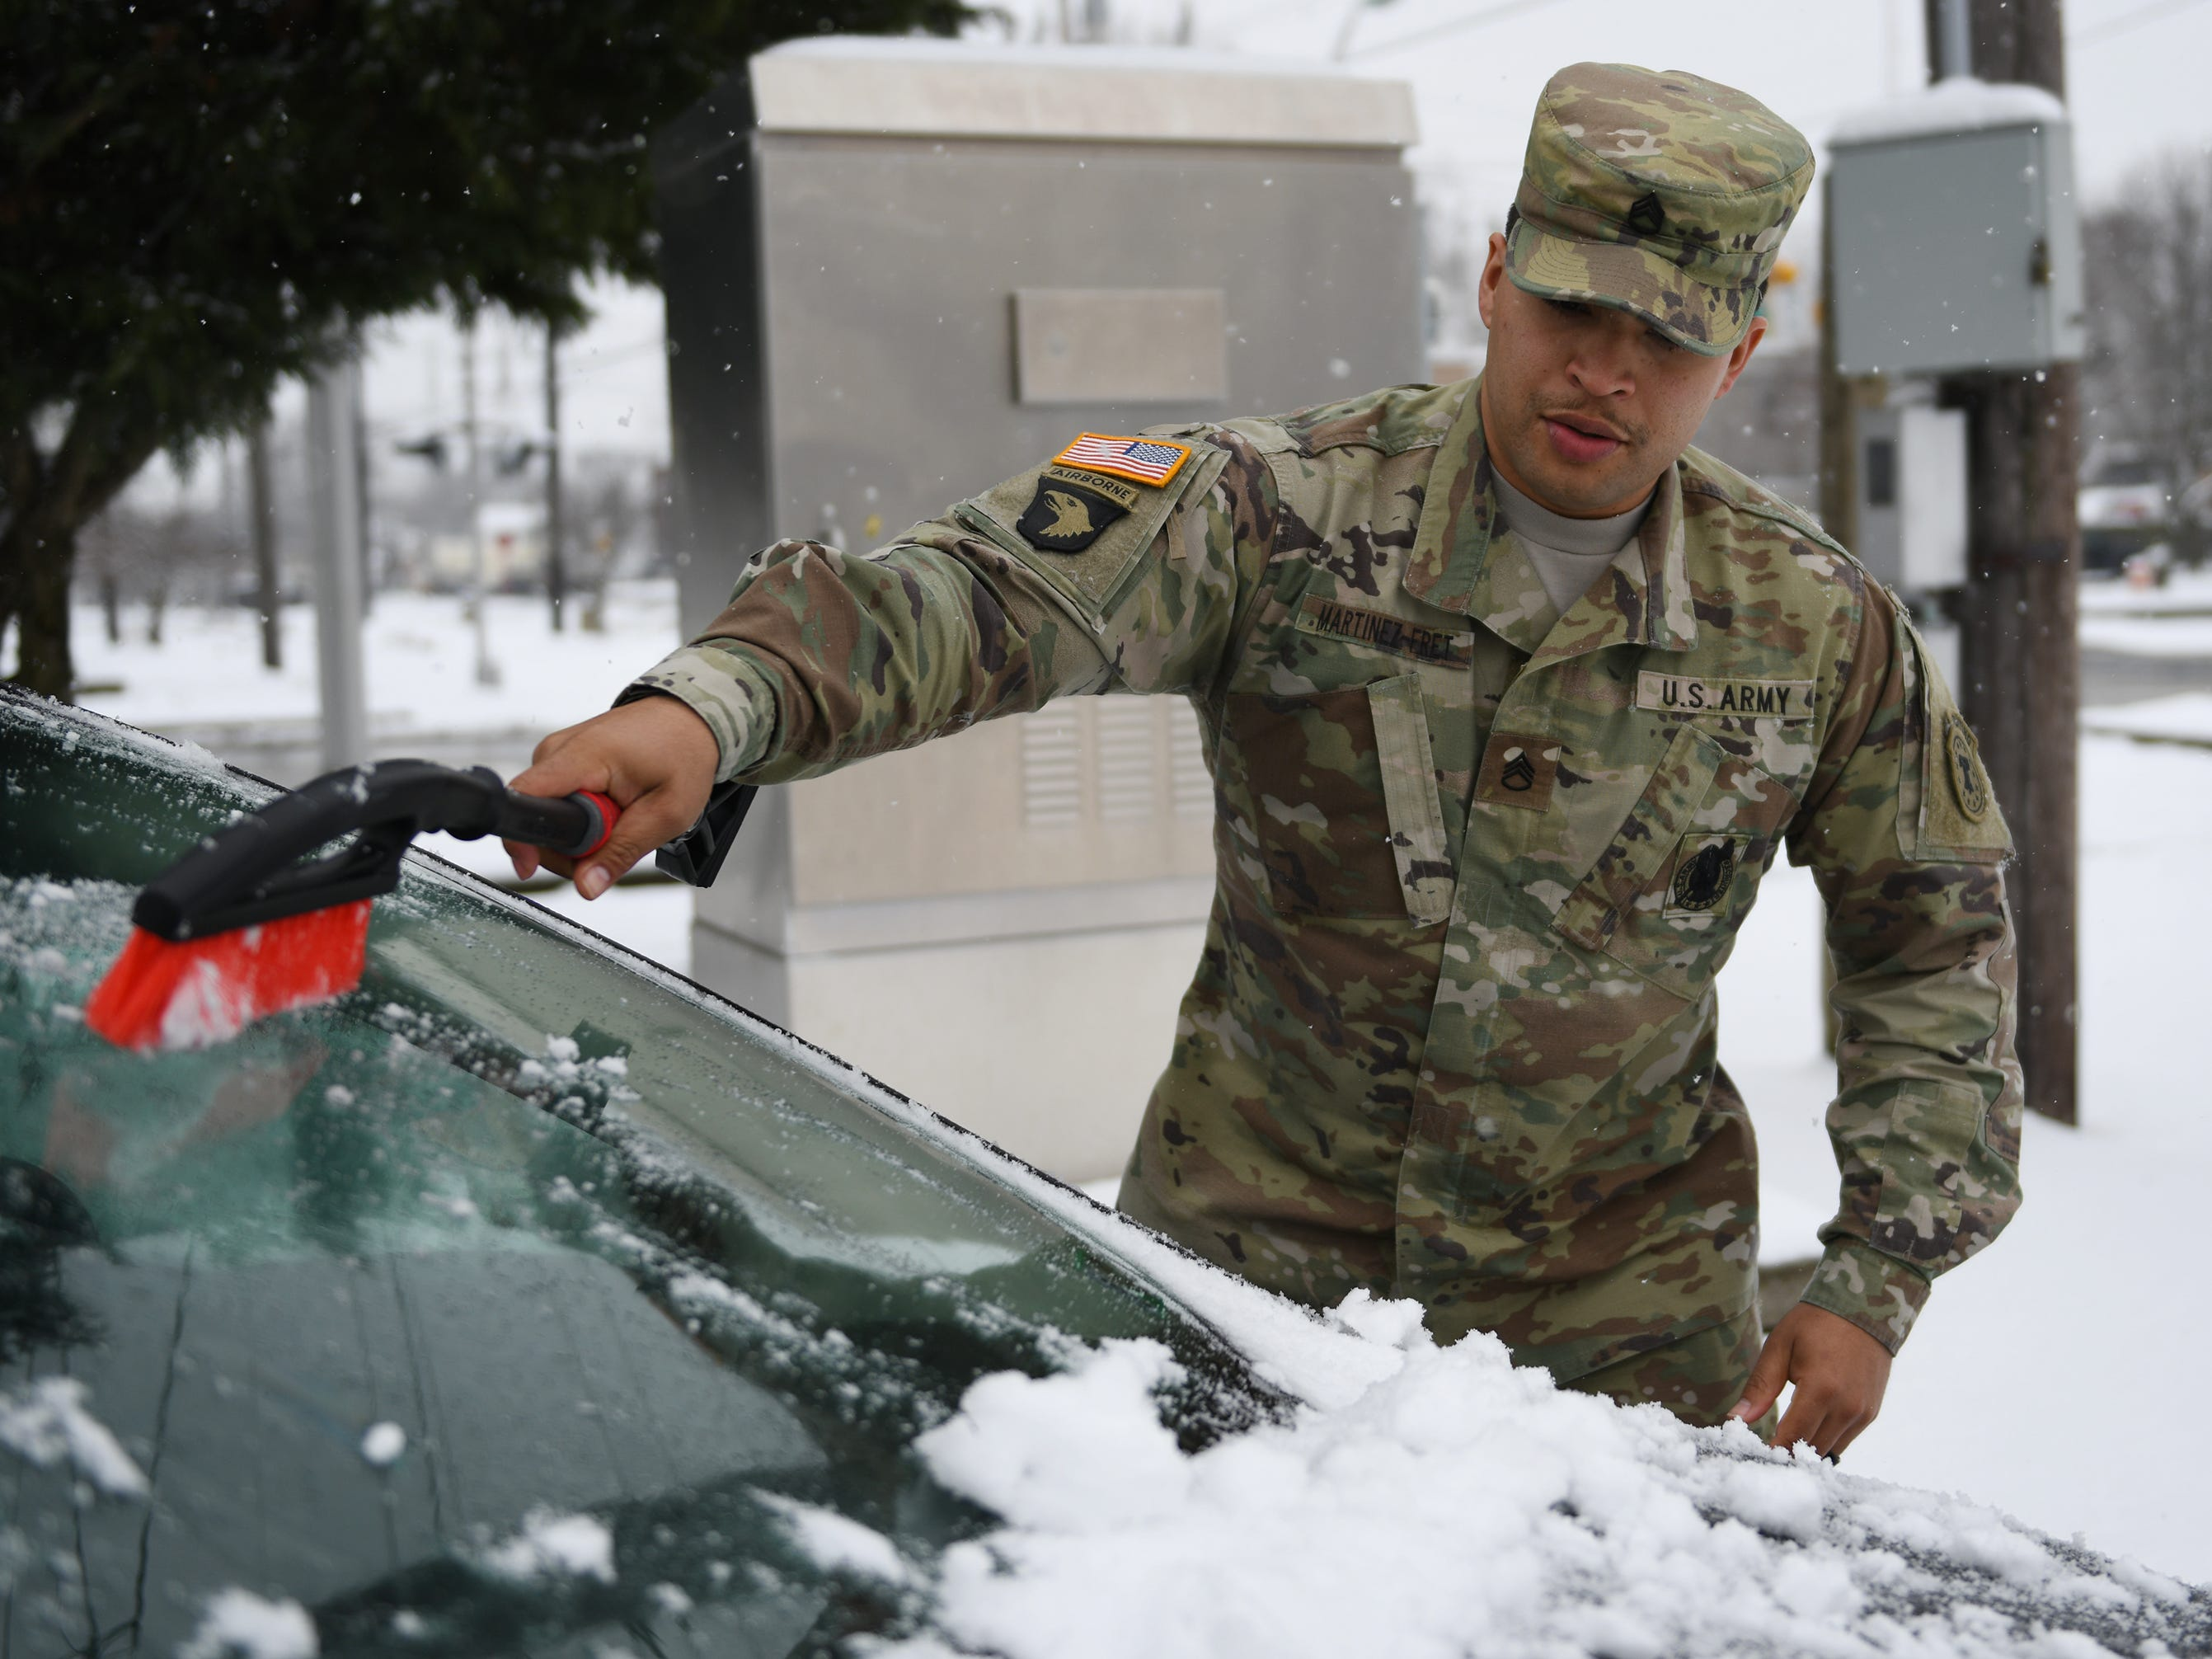 U.S. Army Recruiter Jay Martinez brushes snow of his car in Vineland on Monday, Feb. 11, 2019.